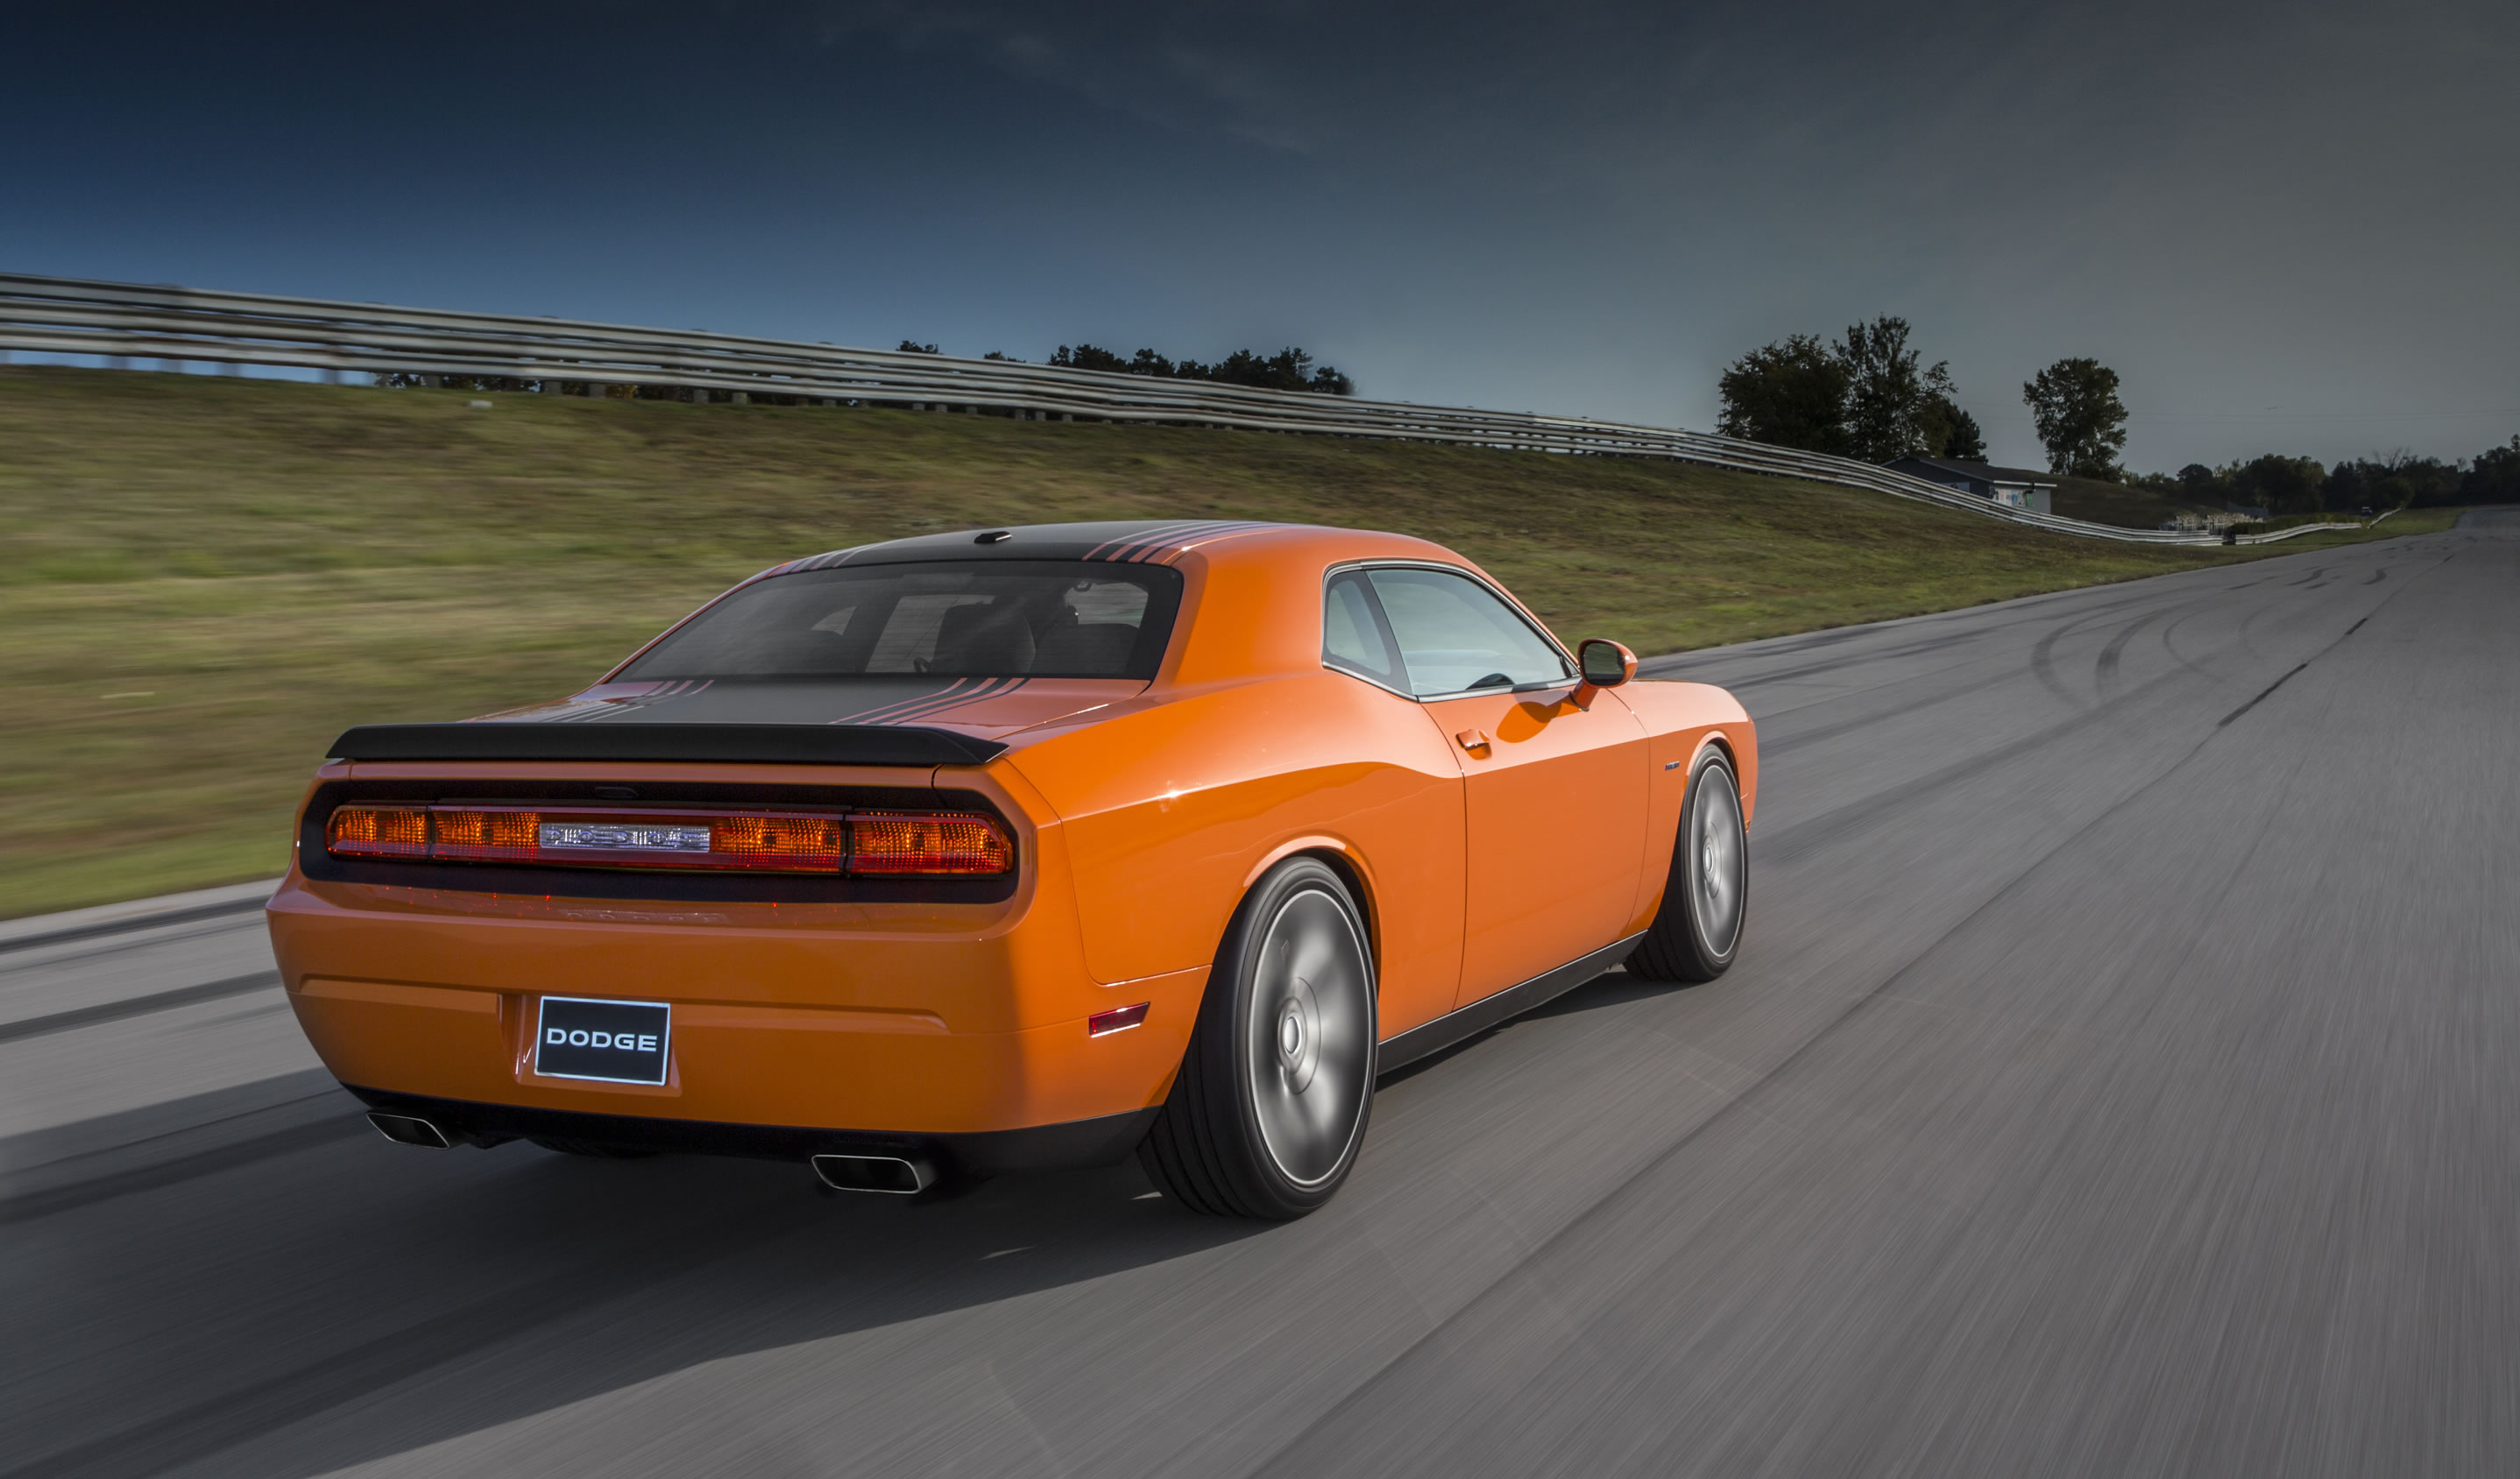 2014 dodge challenger rt shaker 0 60 autos post. Cars Review. Best American Auto & Cars Review